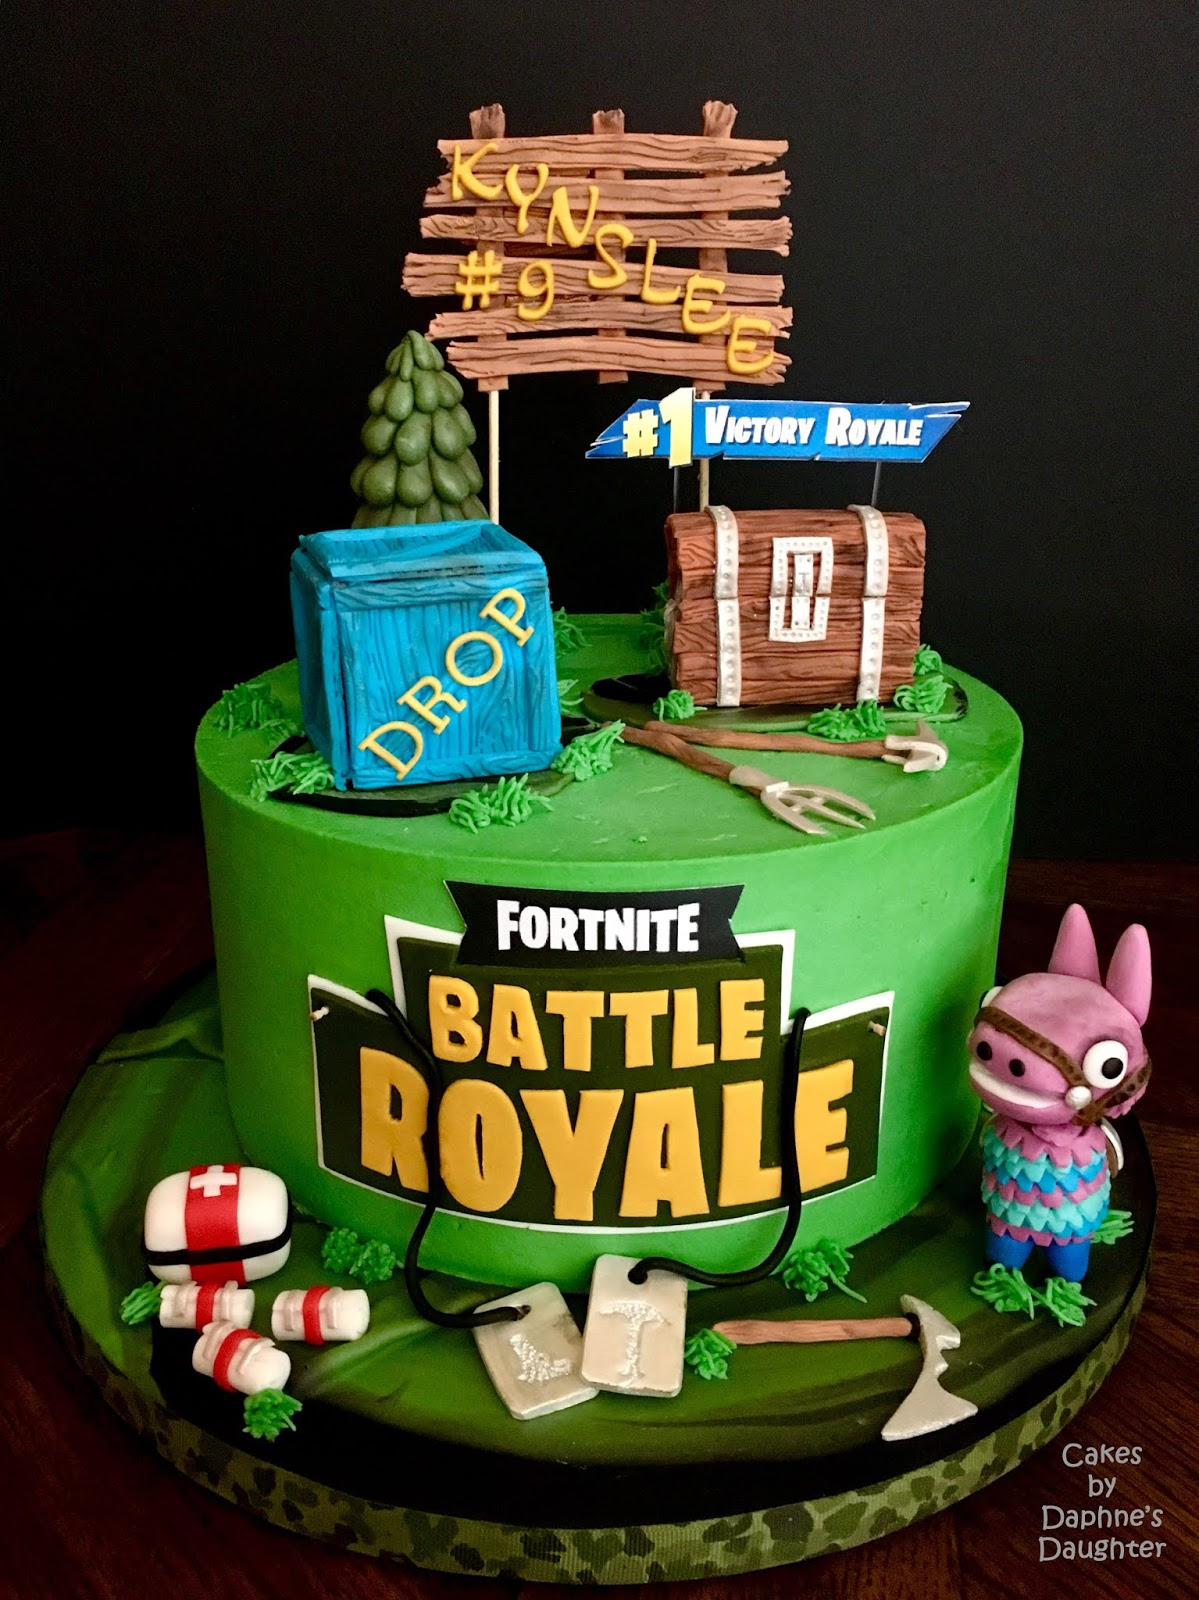 The Bake More Fortnite Cake Guide to complete fortnite's dance in front of 10 different birthday cakes 2019 second anniversary birthday challenge. the bake more fortnite cake